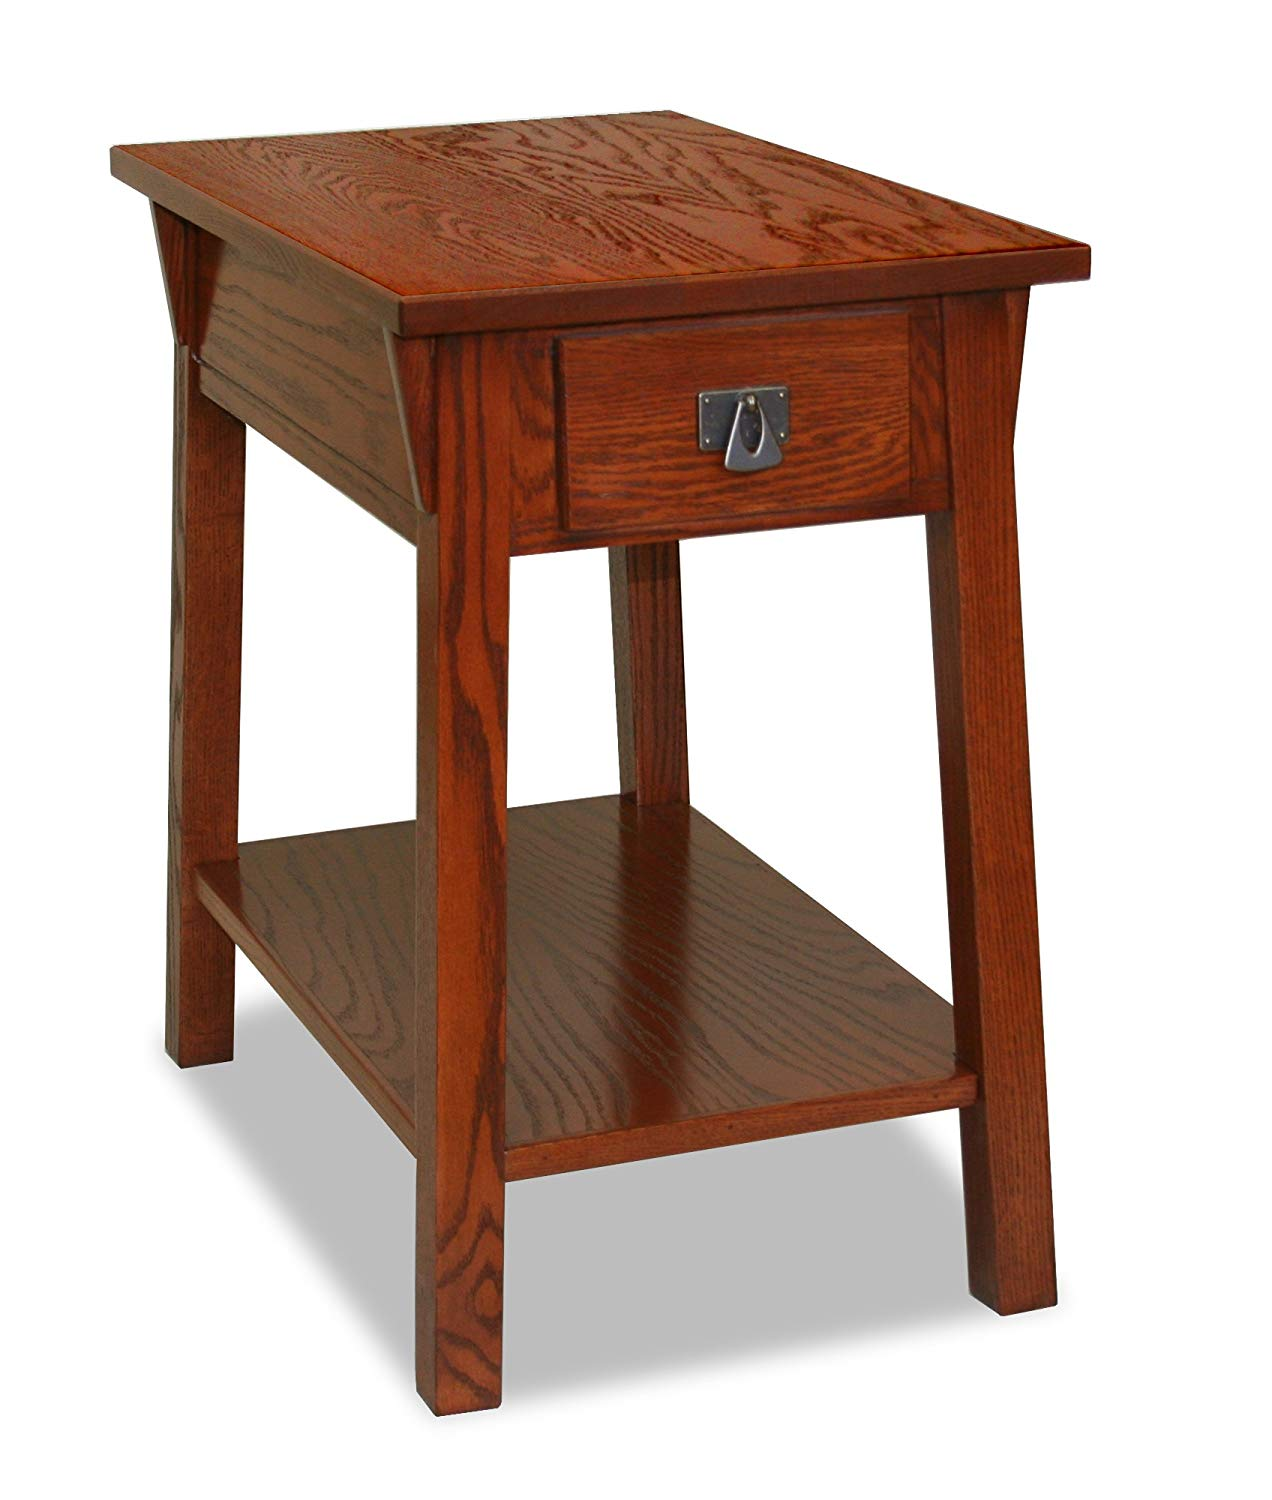 craftsman mission end table amish direct furniture reclaimed wood leick chair side perfect for corner accent outdoor bench seats bunnings hampton bay posada adjustable height